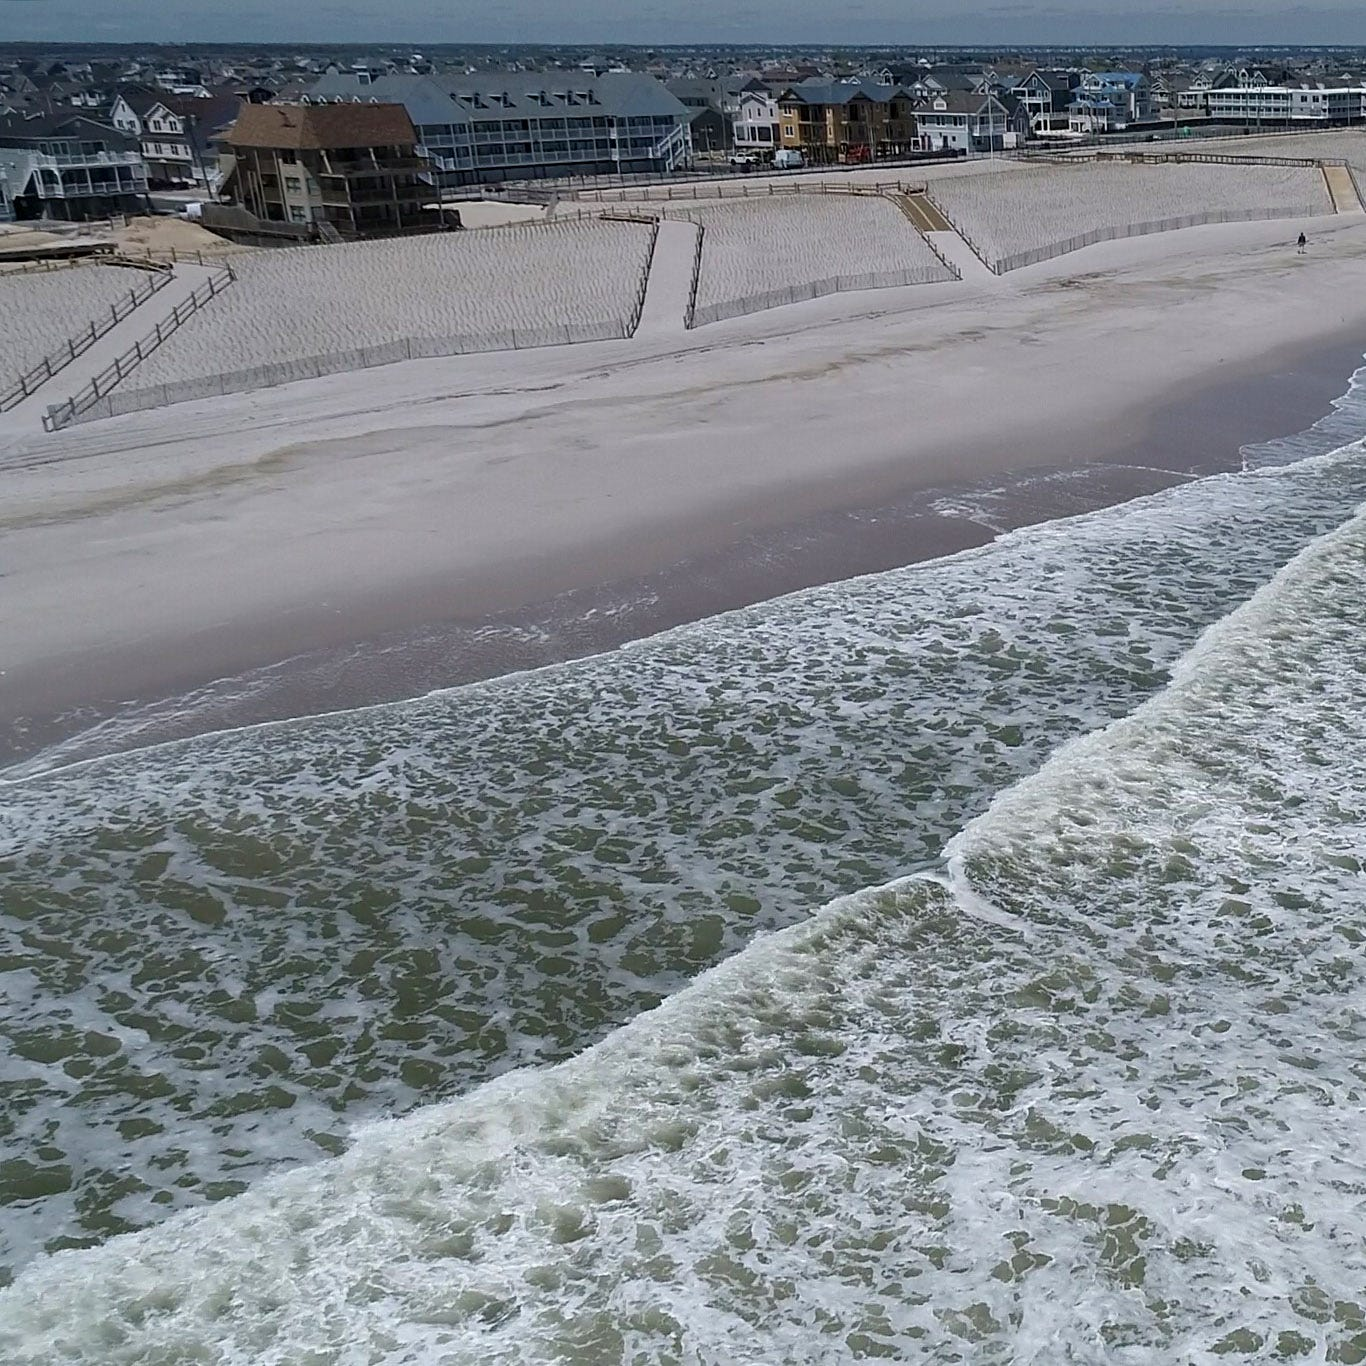 Killer in the waves: Experts urge beachgoers to be cautious